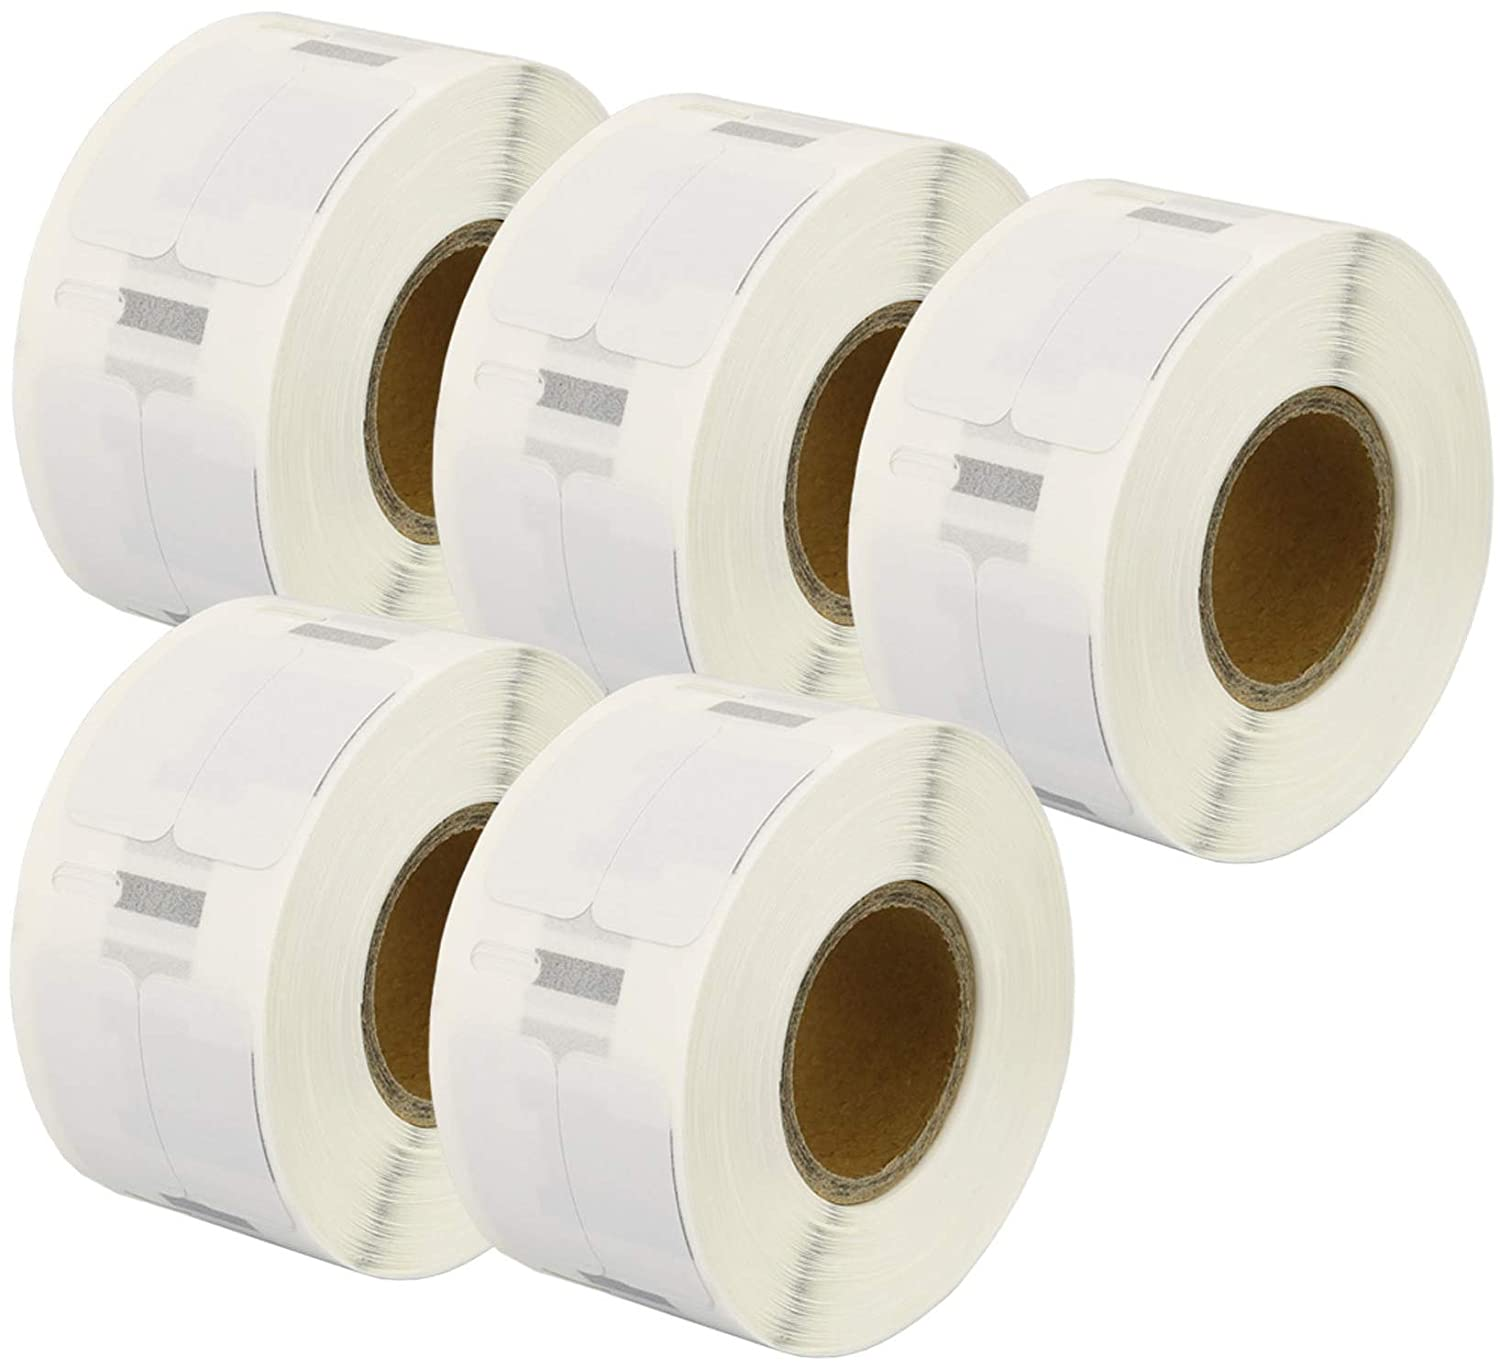 for Dymo LabelWriter 310 320 330 4XL 400 450 Turbo//Twin Turbo//Duo /& Seiko SLP Label Printers 500 Labels per Roll Printing Saver 3x 11352 25 x 54 mm Compatible Return Address Labels Rolls